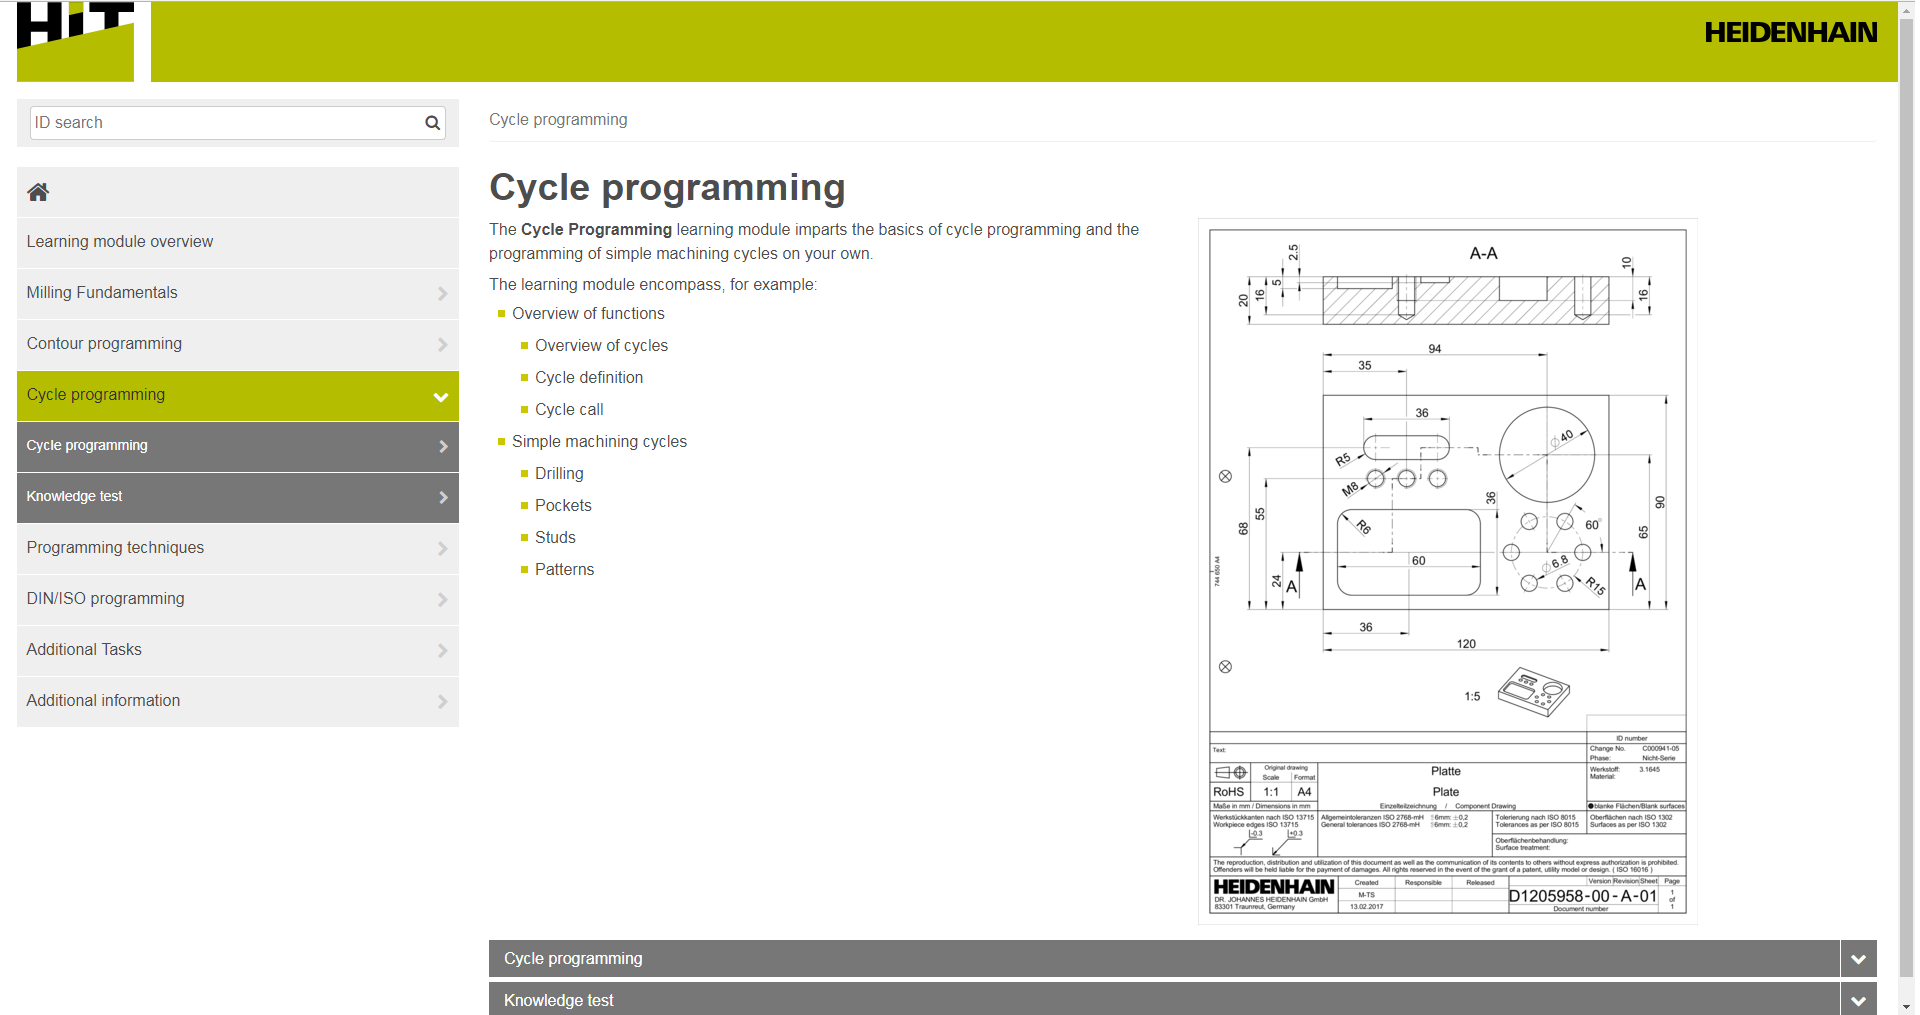 HIT 3.0 Cycle programming